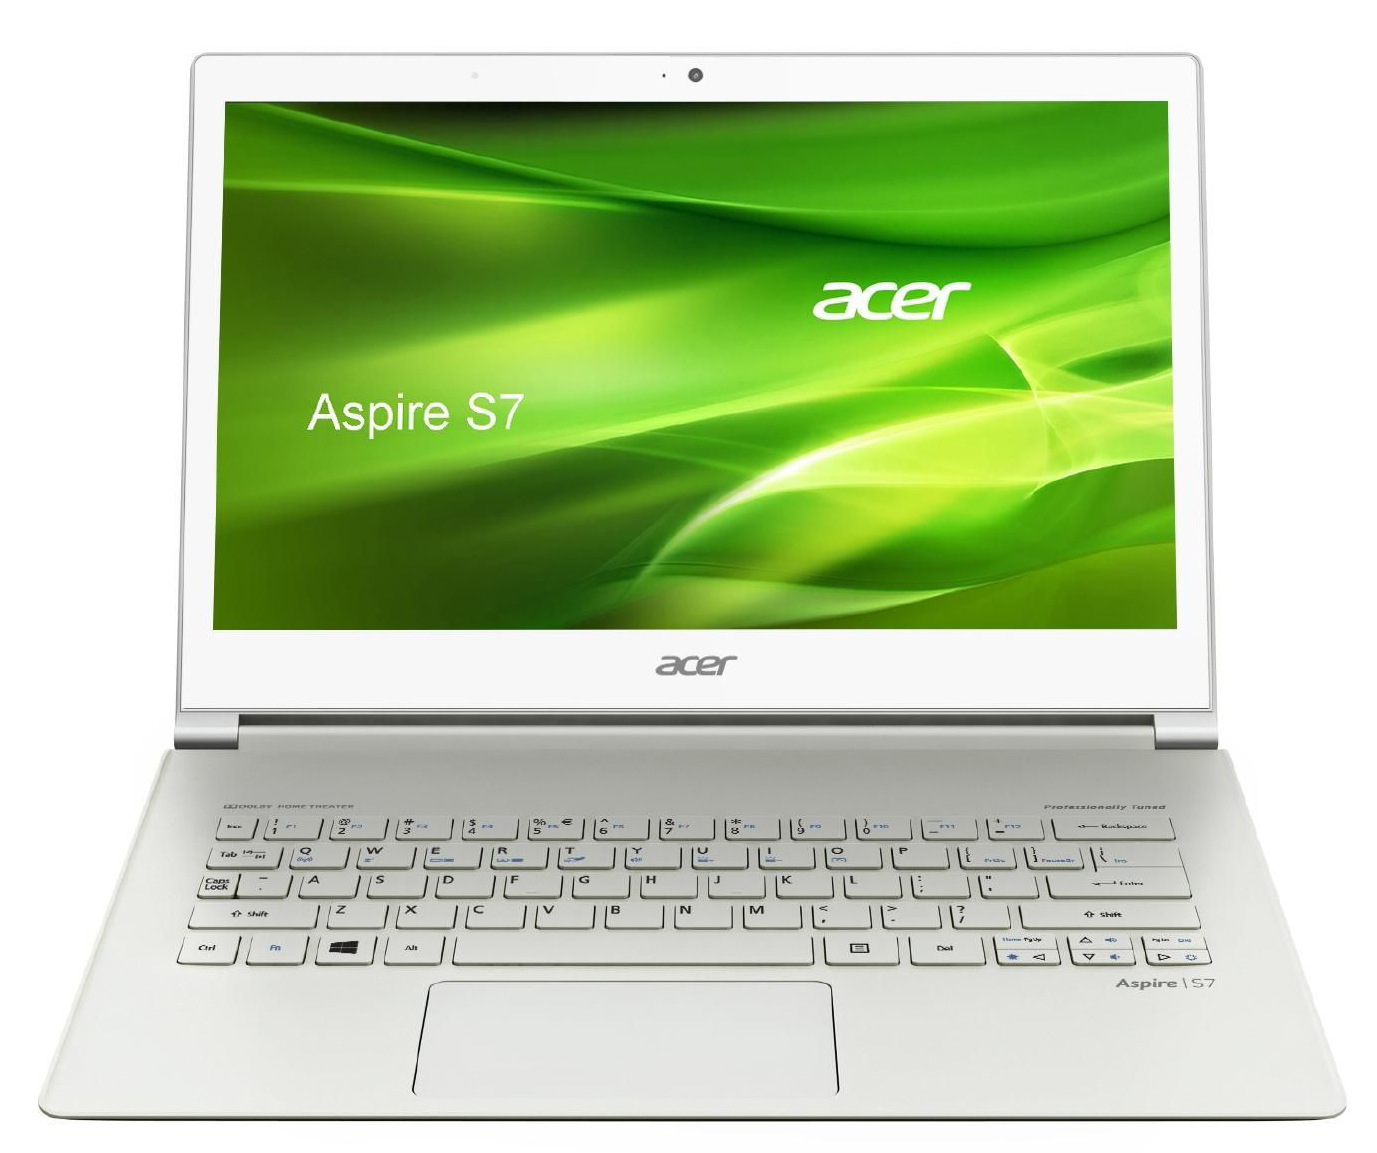 Acer Aspire S7-392 Realtek LAN Drivers for Windows XP